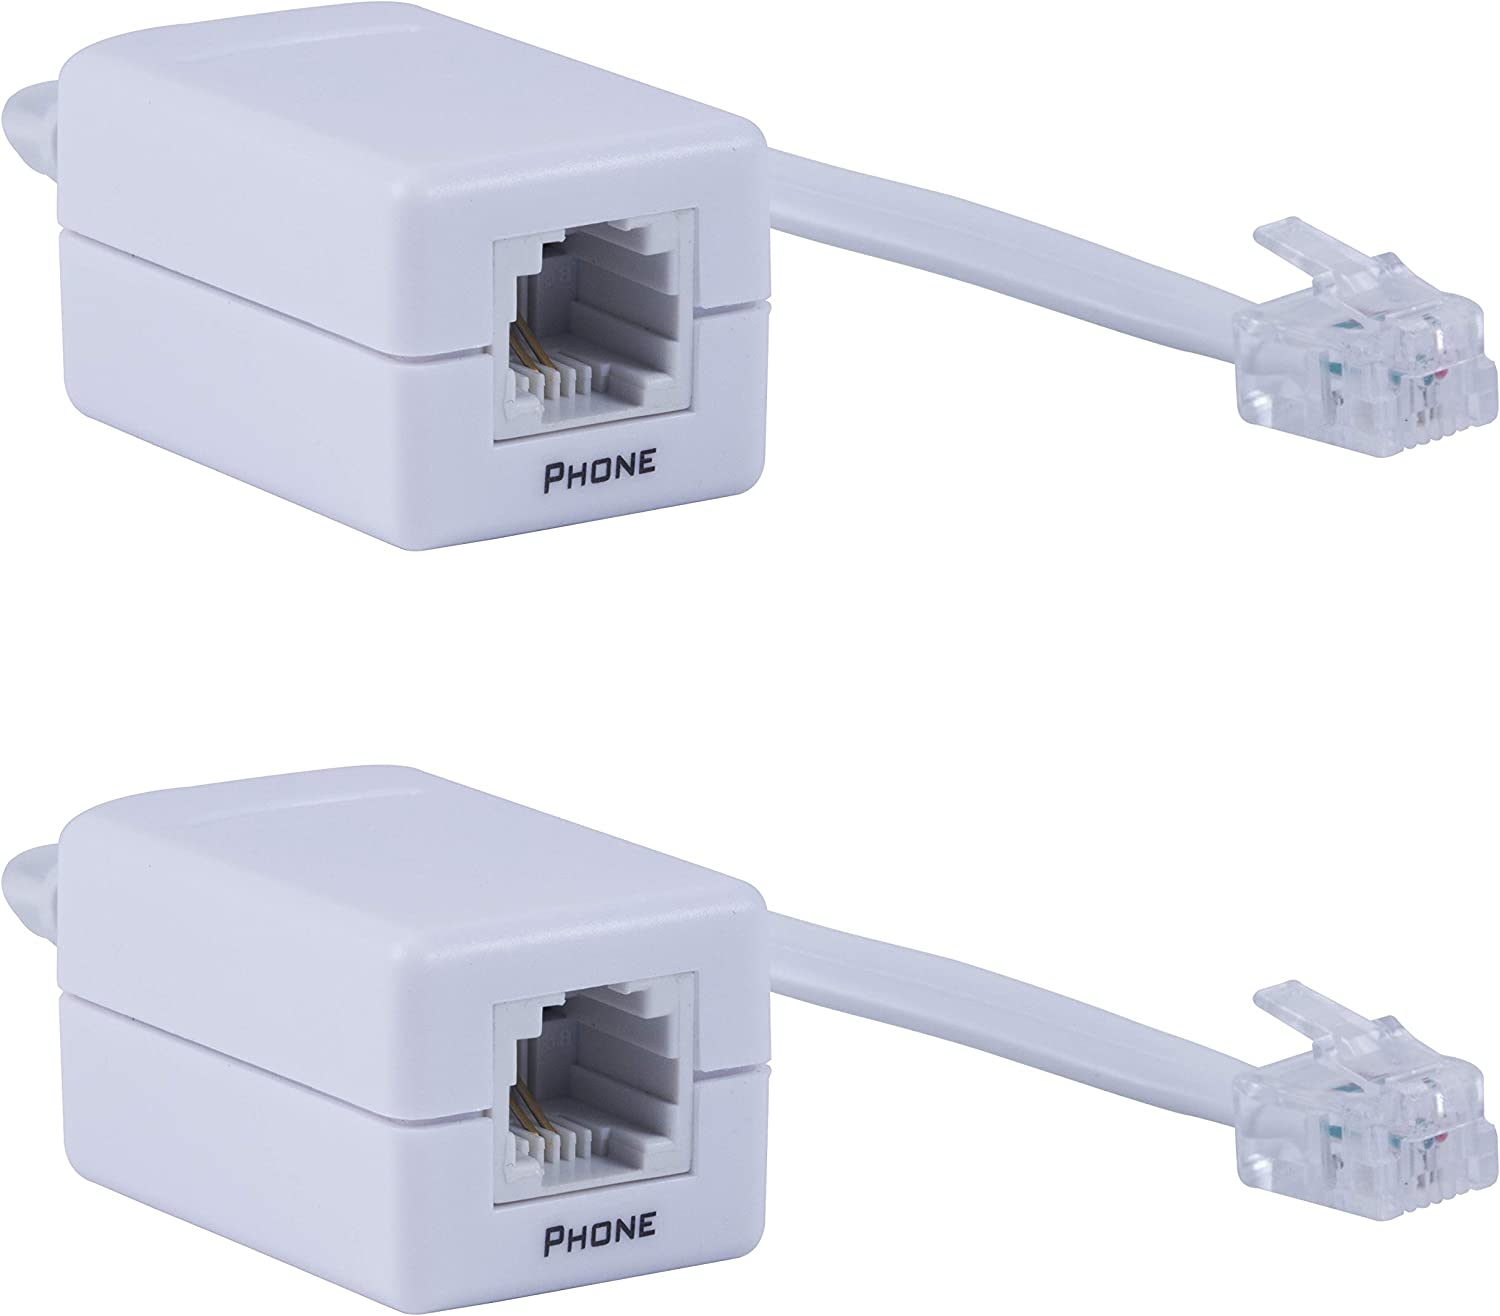 Power Gear Dsl Filter, 2 Pack, Phone Line, Connect to Standard Phone Jacks, Use for Home or Office, Supports Telephones, Fax Machines, Answering Machines, Universal Filter, All Brands, White, 46086